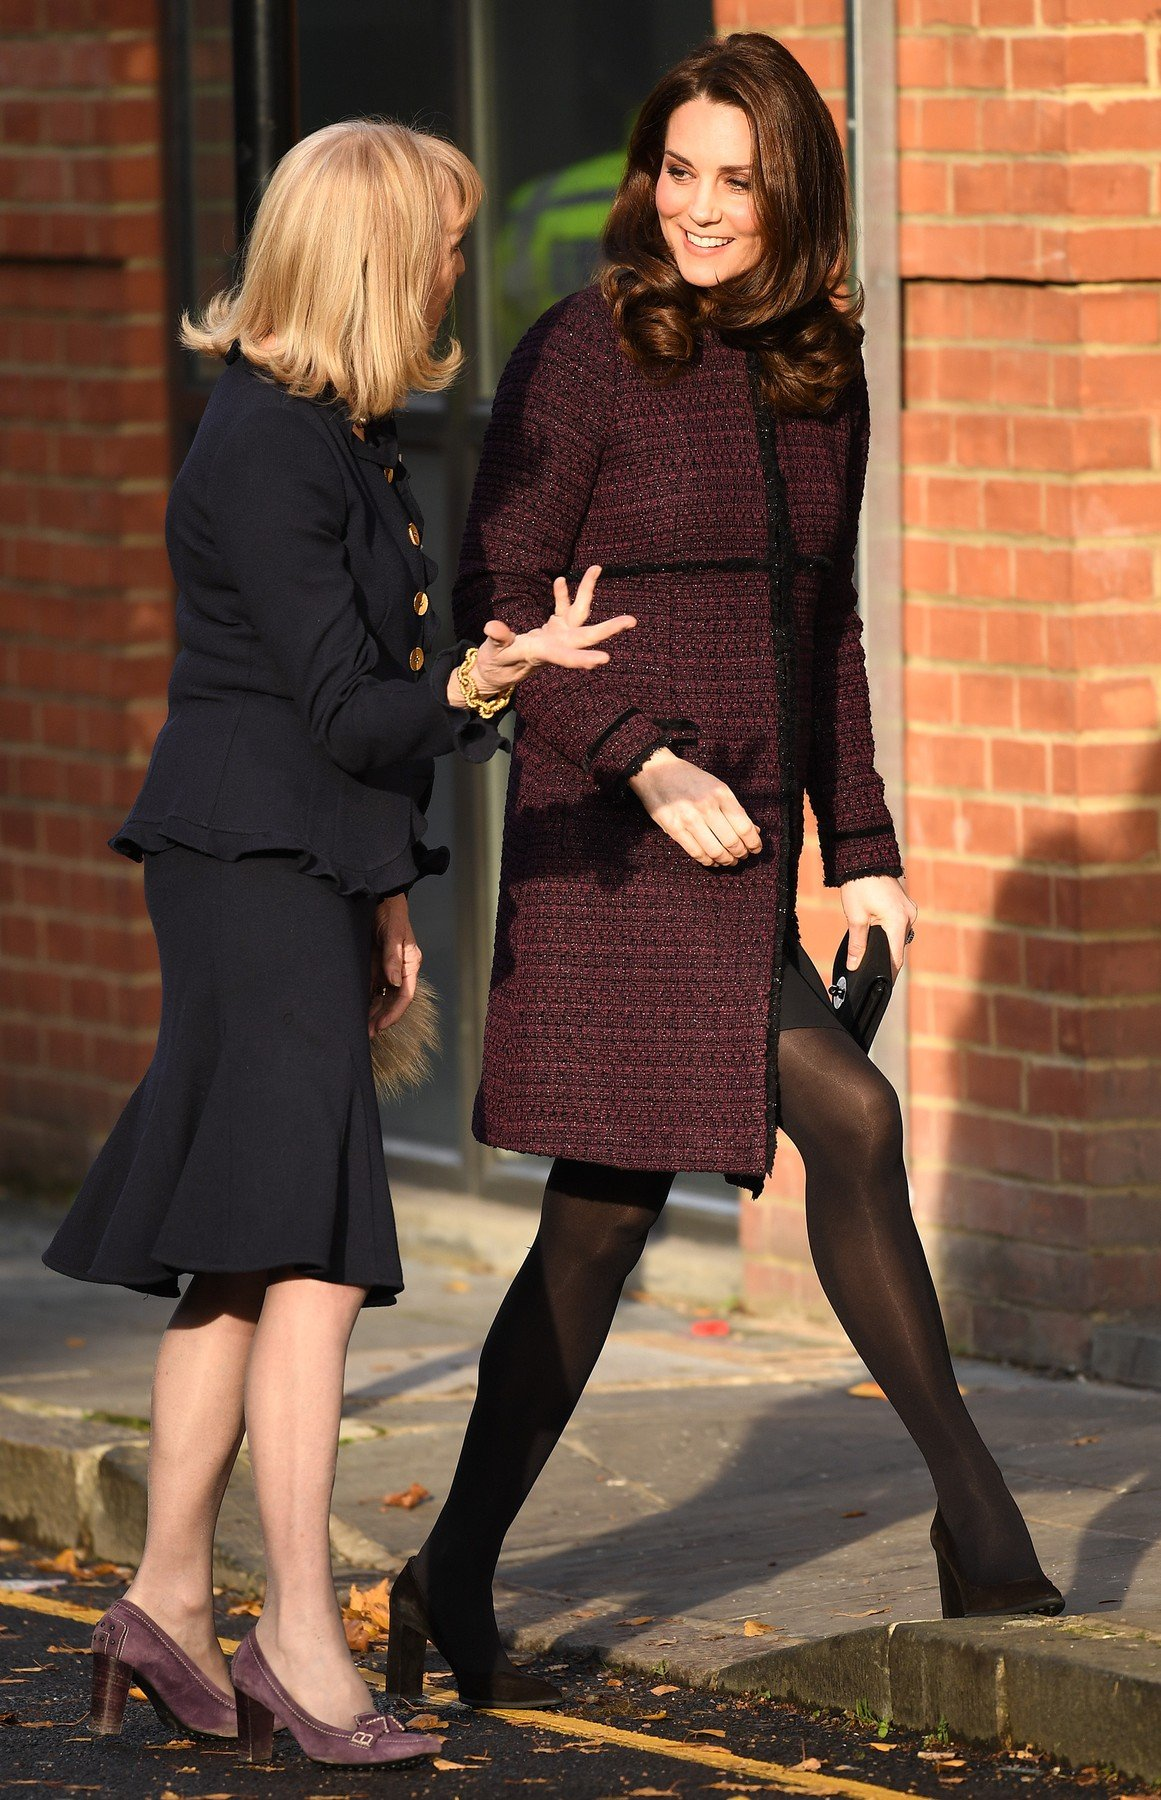 The Duchess of Cambridge attends a Community Christmas Party at the Rugby Portobello Trust, London, UK, on the 12th December 2017. 12 Dec 2017, Image: 357612261, License: Rights-managed, Restrictions: NO United Kingdom, Model Release: no, Credit line: Profimedia, Mega Agency